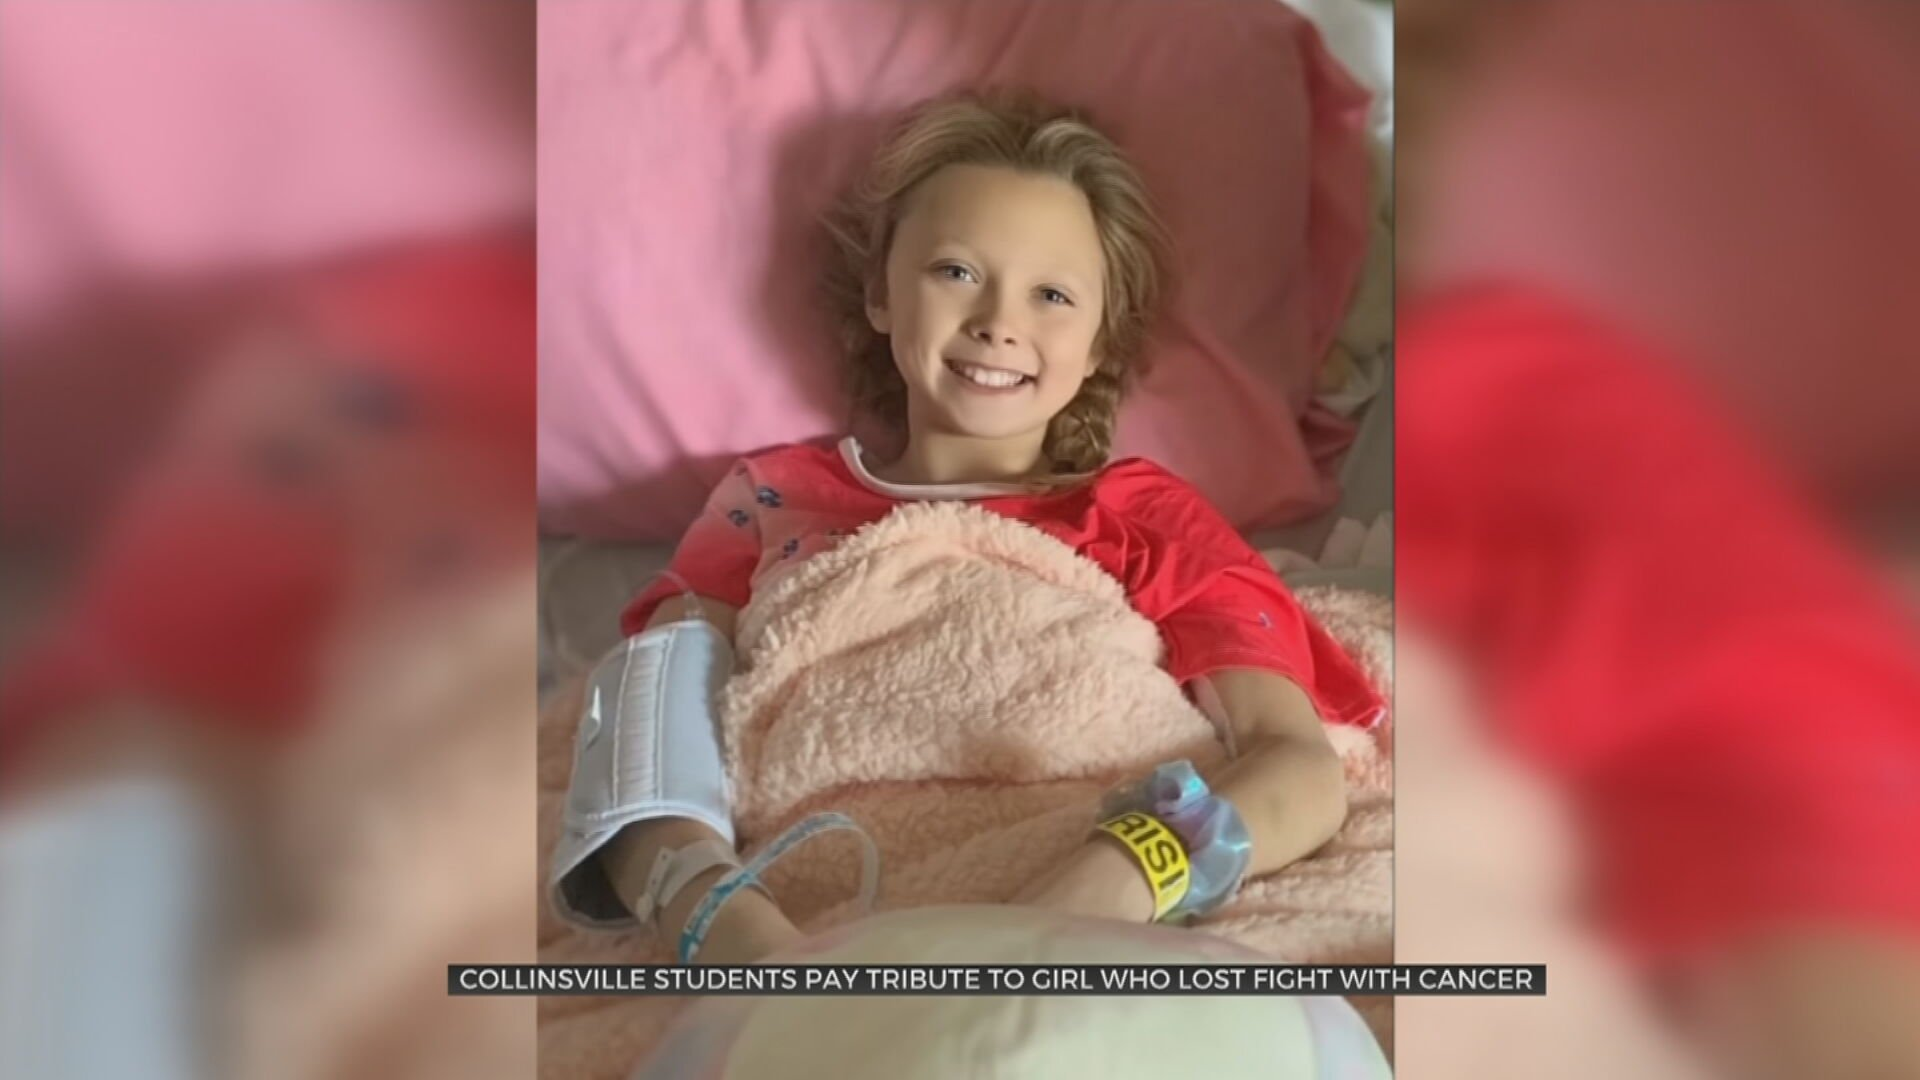 Collinsville Students Pay Tribute To Girl Who Lost Fight With Cancer